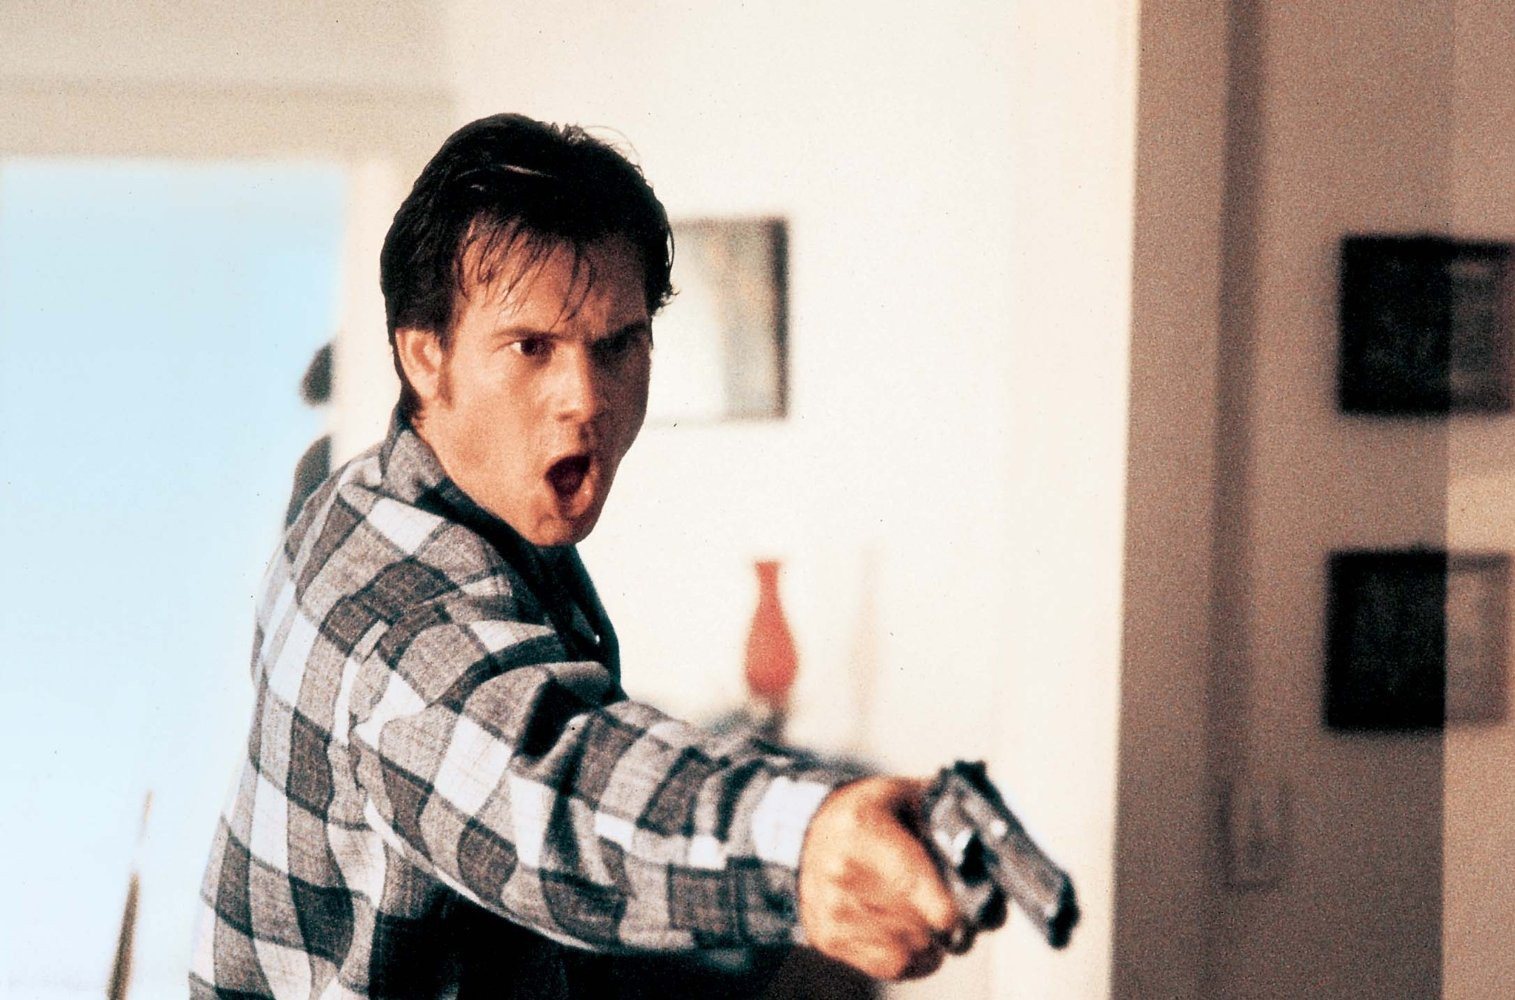 Paxton in 1992's One False Move